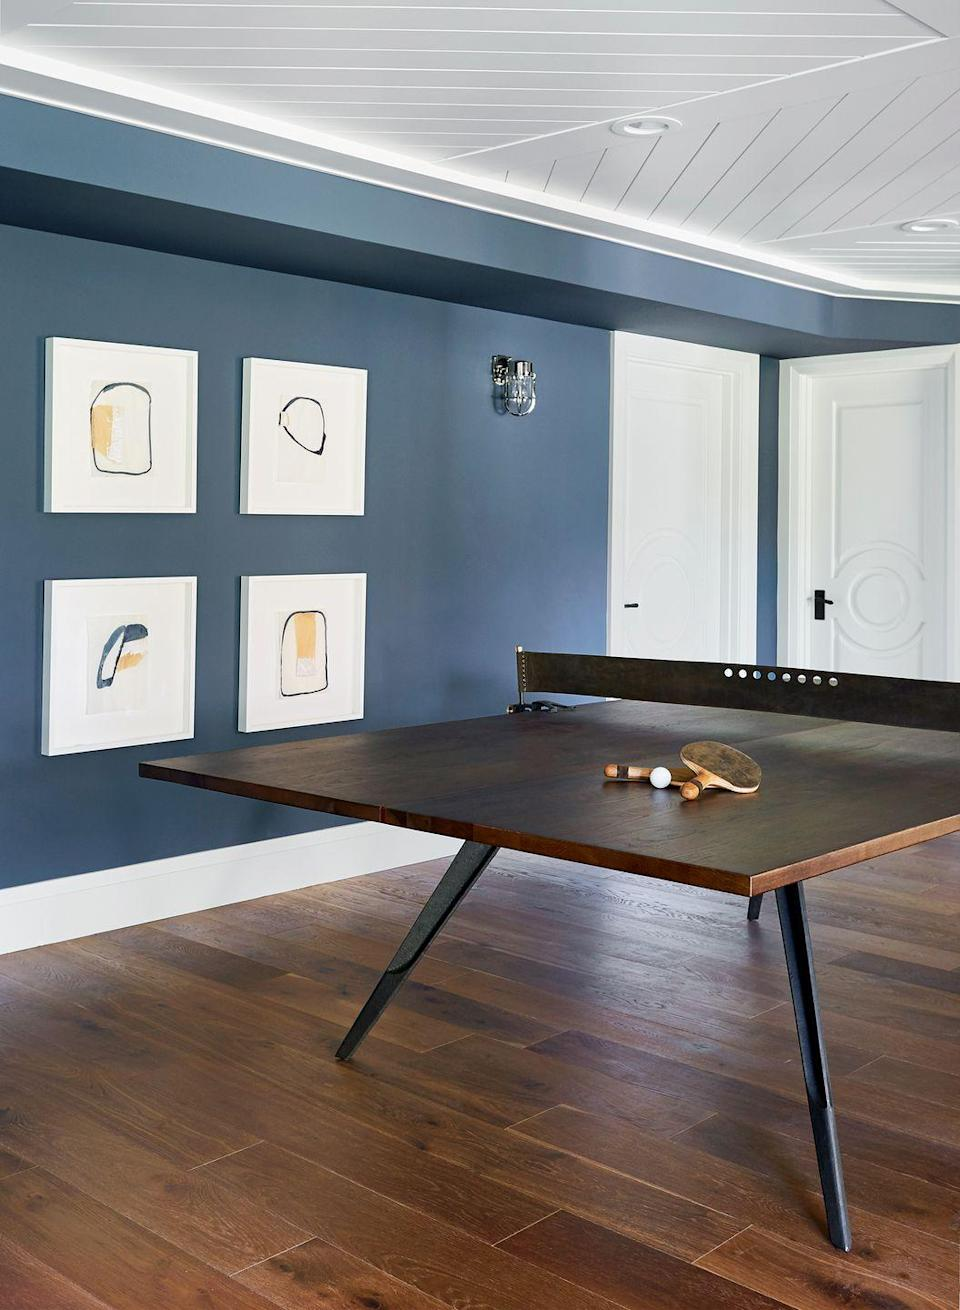 "<p>Investing in a stylish ping-pong table will ensure that everyone has fun but it also blends into the space and looks upscale. In this room designed by <a href=""https://stylebyemilyhenderson.com/"" rel=""nofollow noopener"" target=""_blank"" data-ylk=""slk:Emily Henderson"" class=""link rapid-noclick-resp"">Emily Henderson</a>, the pin pong table reflects the dark hardwood floors. Just make sure no one ruins it with a game of beer pong (adults-only, of course). </p>"